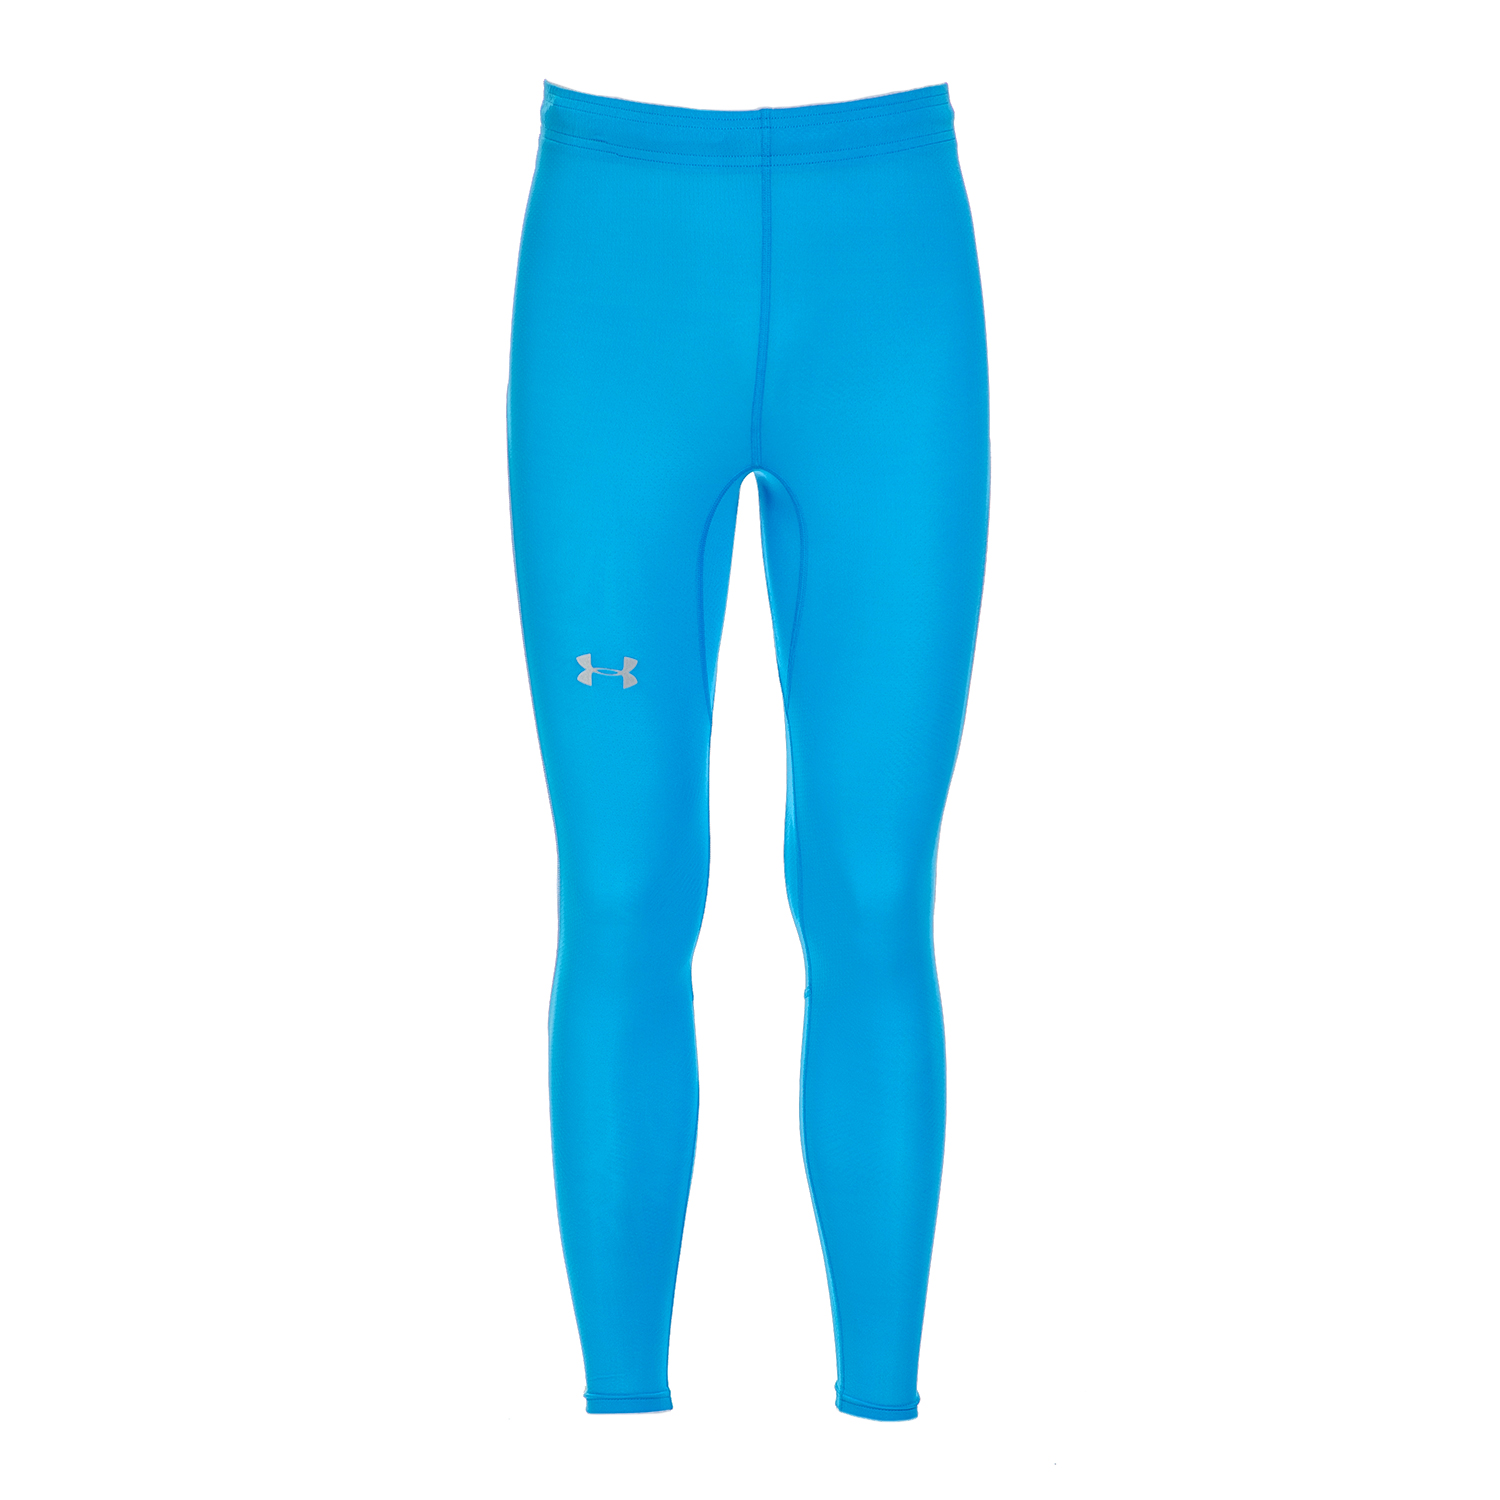 UNDER ARMOUR - Ανδρικό αθλητικό μακρύ κολάν Under Armour COOLSWITCH RUN TIGH γαλ ανδρικά ρούχα αθλητικά κολάν